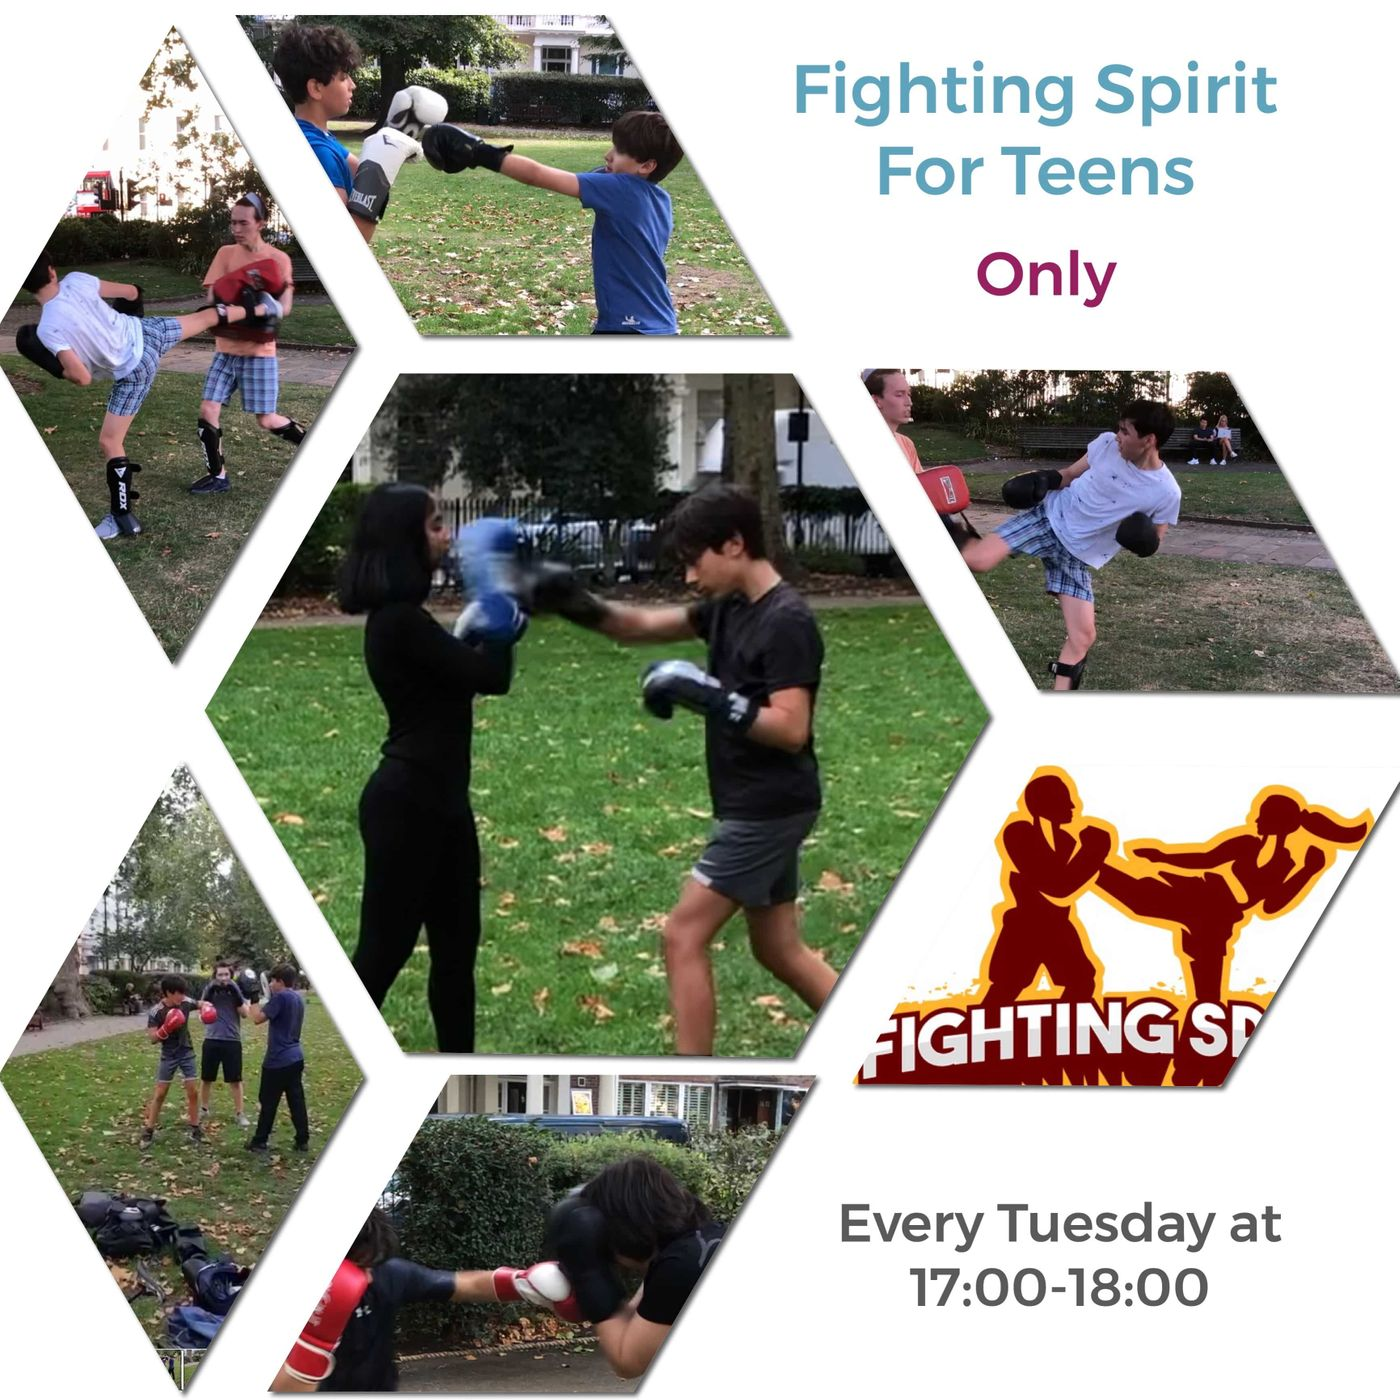 Don't miss out on the new after school activity for teenagers aged 11-17 years old.  Fighting Spirit For Teens is an intense Boxing & Kickboxing class every Tuesday from 17:00 to 18:00.  Get a free trial session with the link below:  https://bua.fit/refer/j8WxZCGnnR